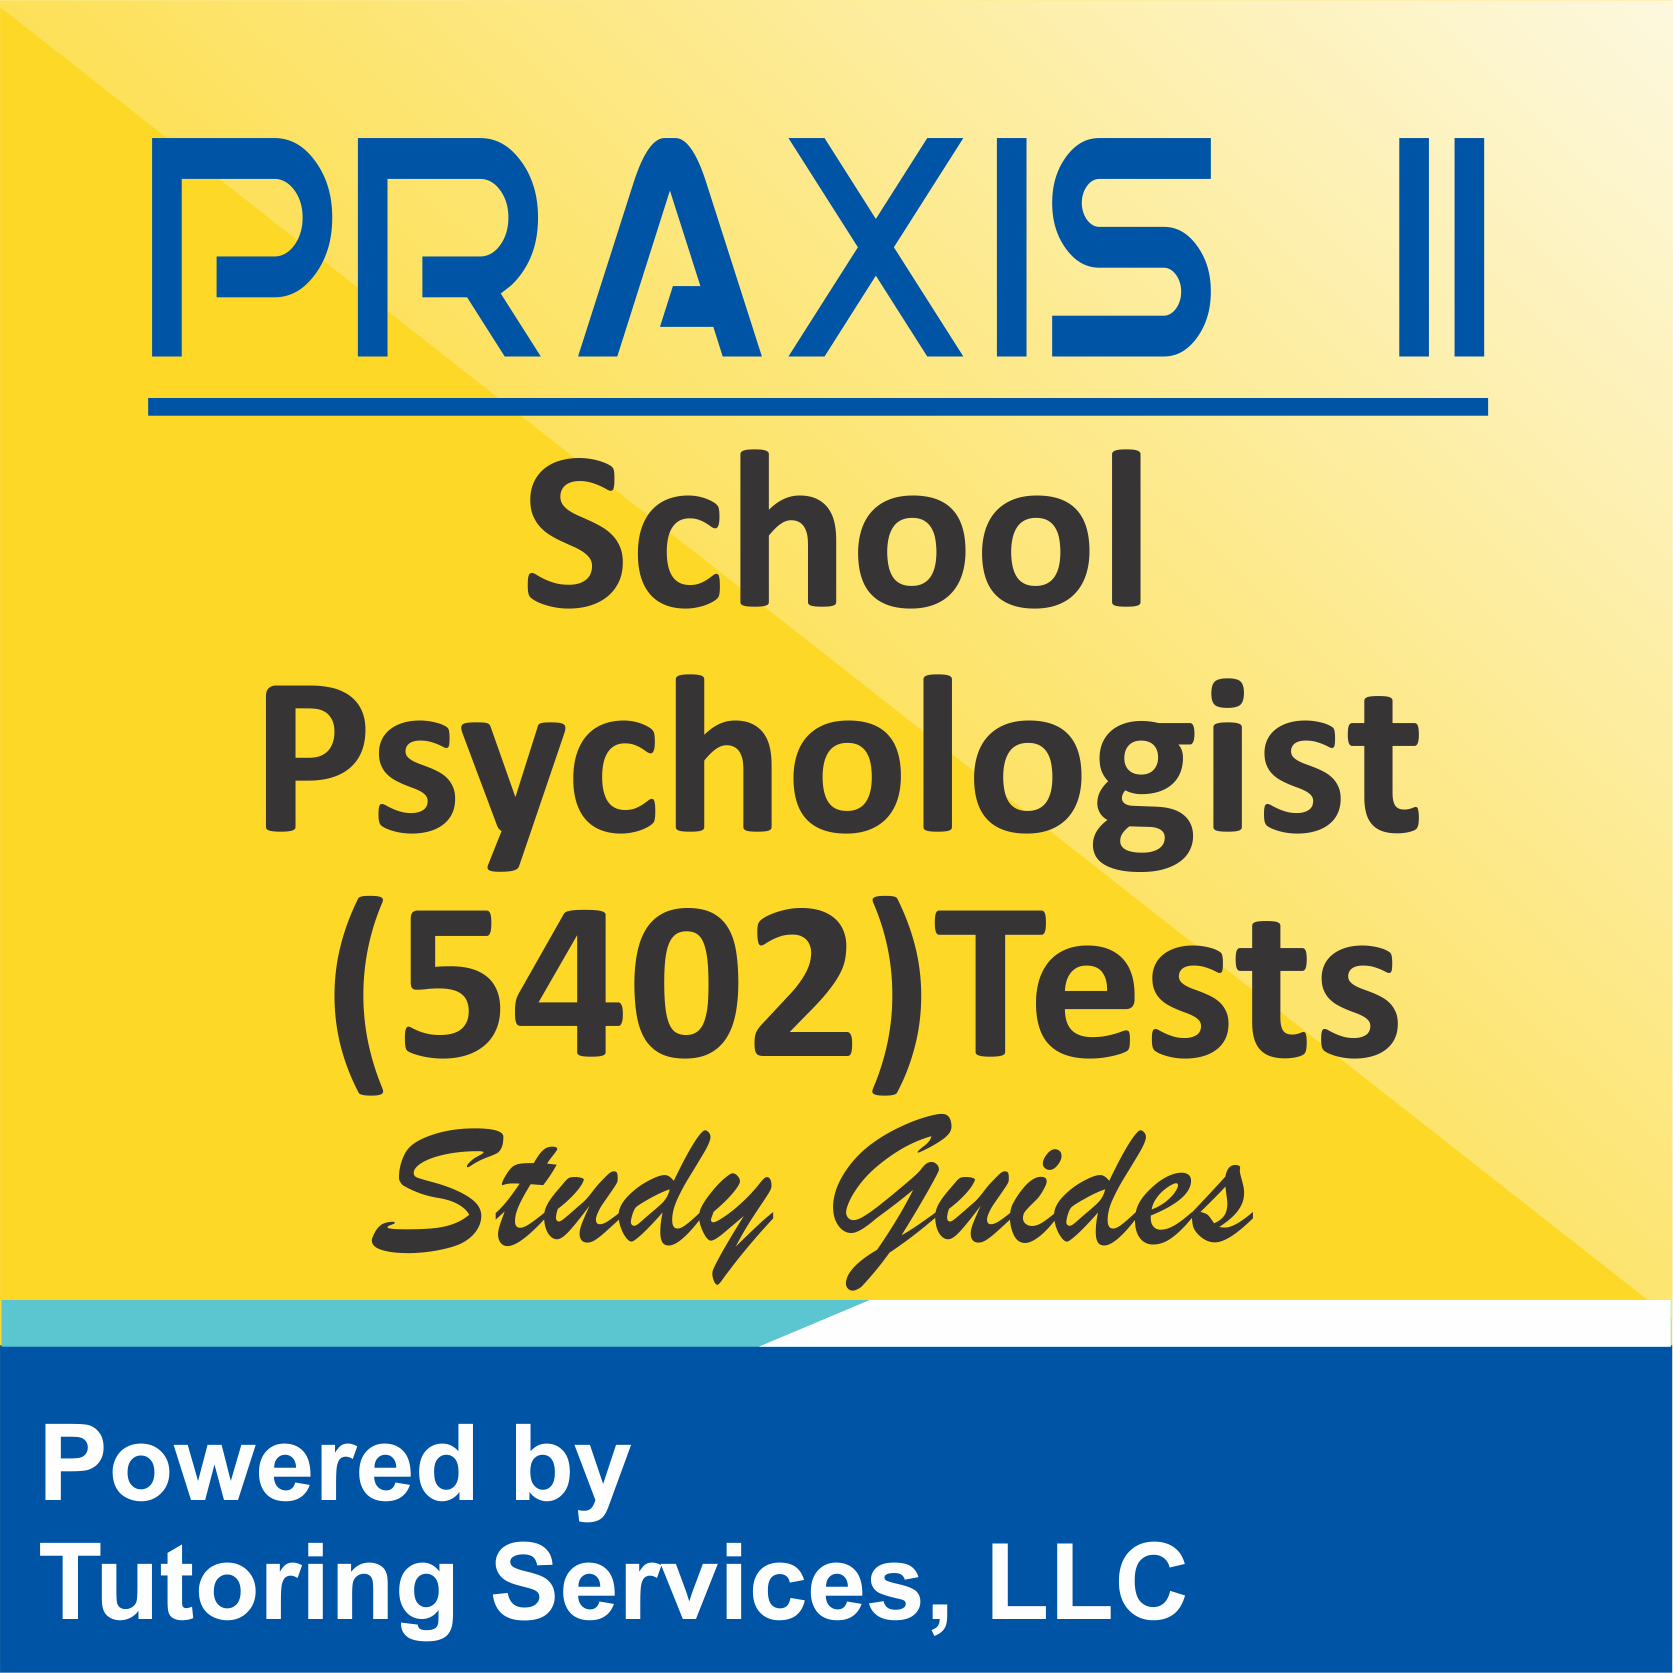 praxis ii school psychologist 5402 subject assessment rh studyguide net school psychology praxis study guide 5402 For Elementary Education Praxis Study Guide